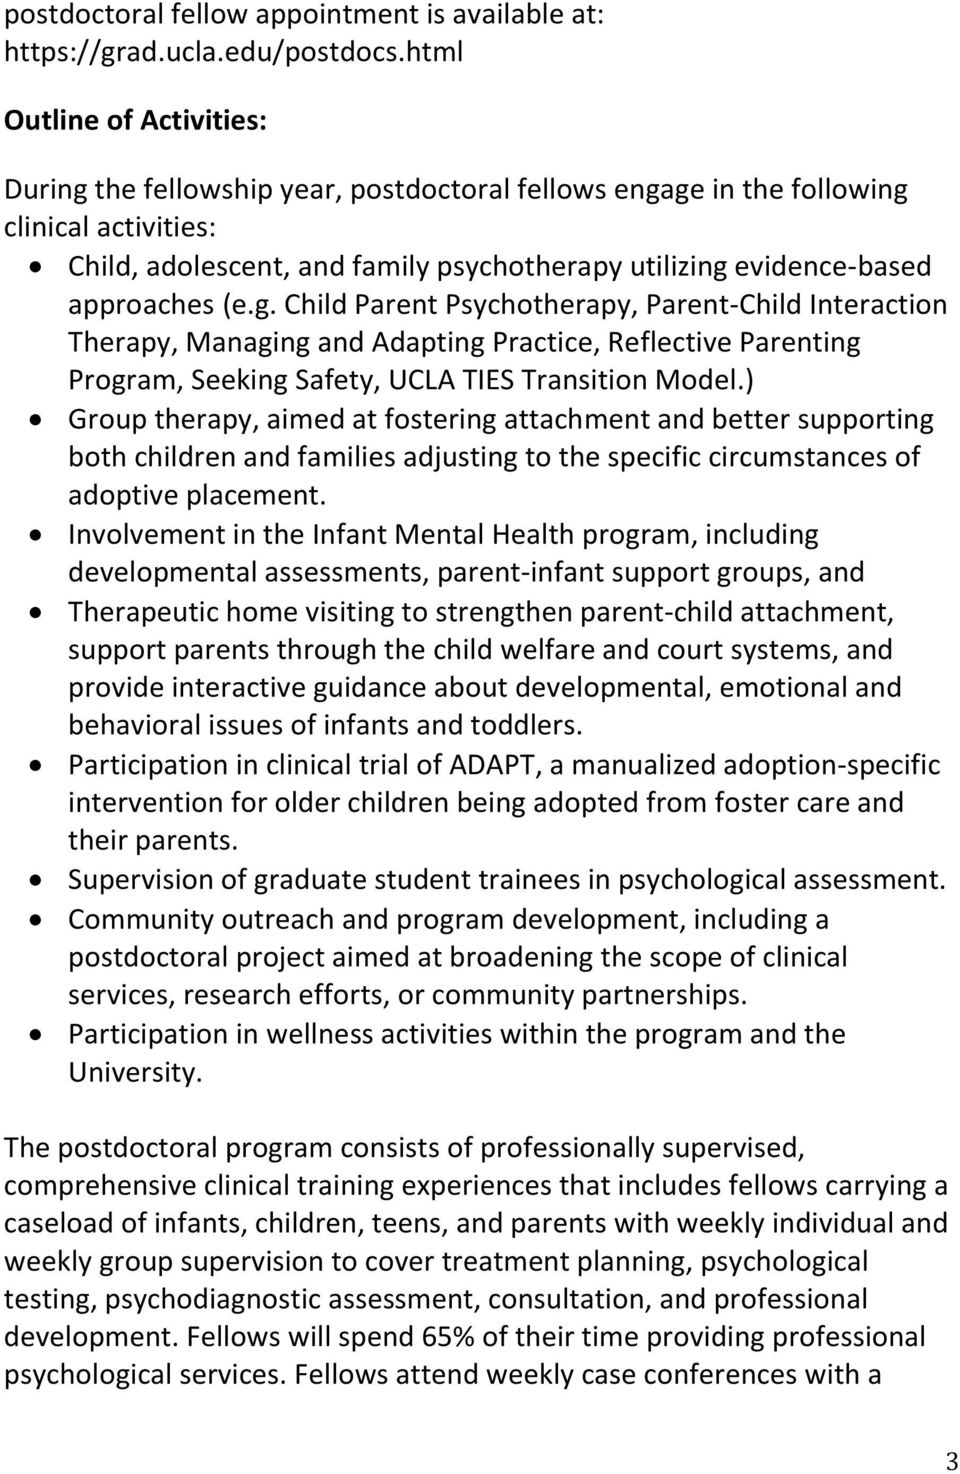 approaches (e.g. Child Parent Psychotherapy, Parent-Child Interaction Therapy, Managing and Adapting Practice, Reflective Parenting Program, Seeking Safety, UCLA TIES Transition Model.